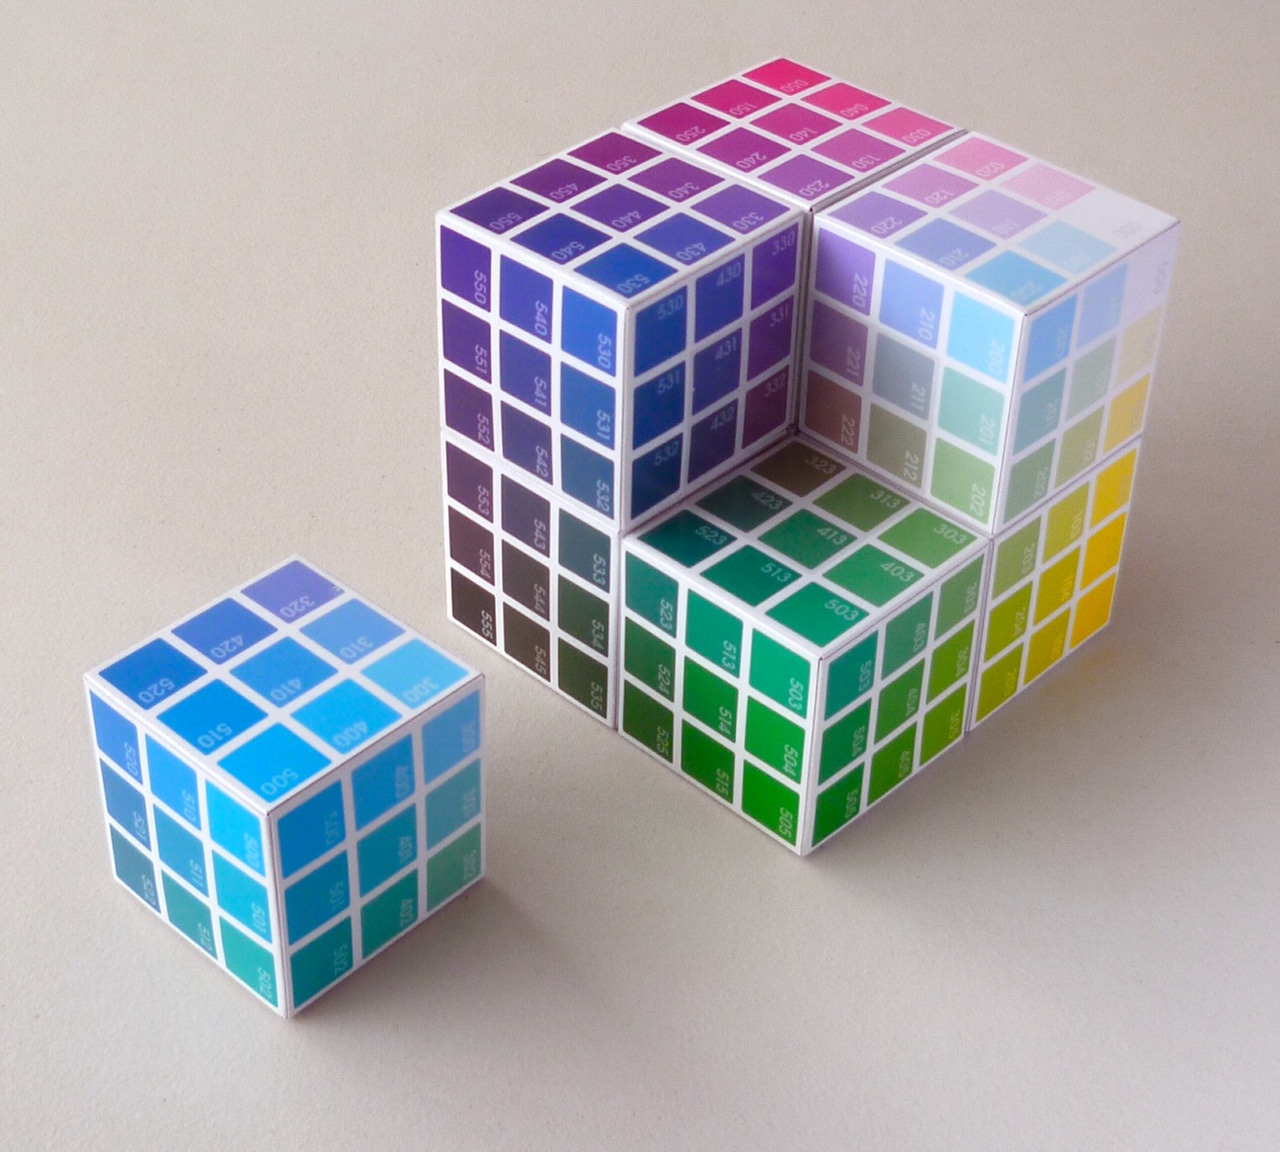 a deck of cards to a stack of Cubes, this is BTC in 3D